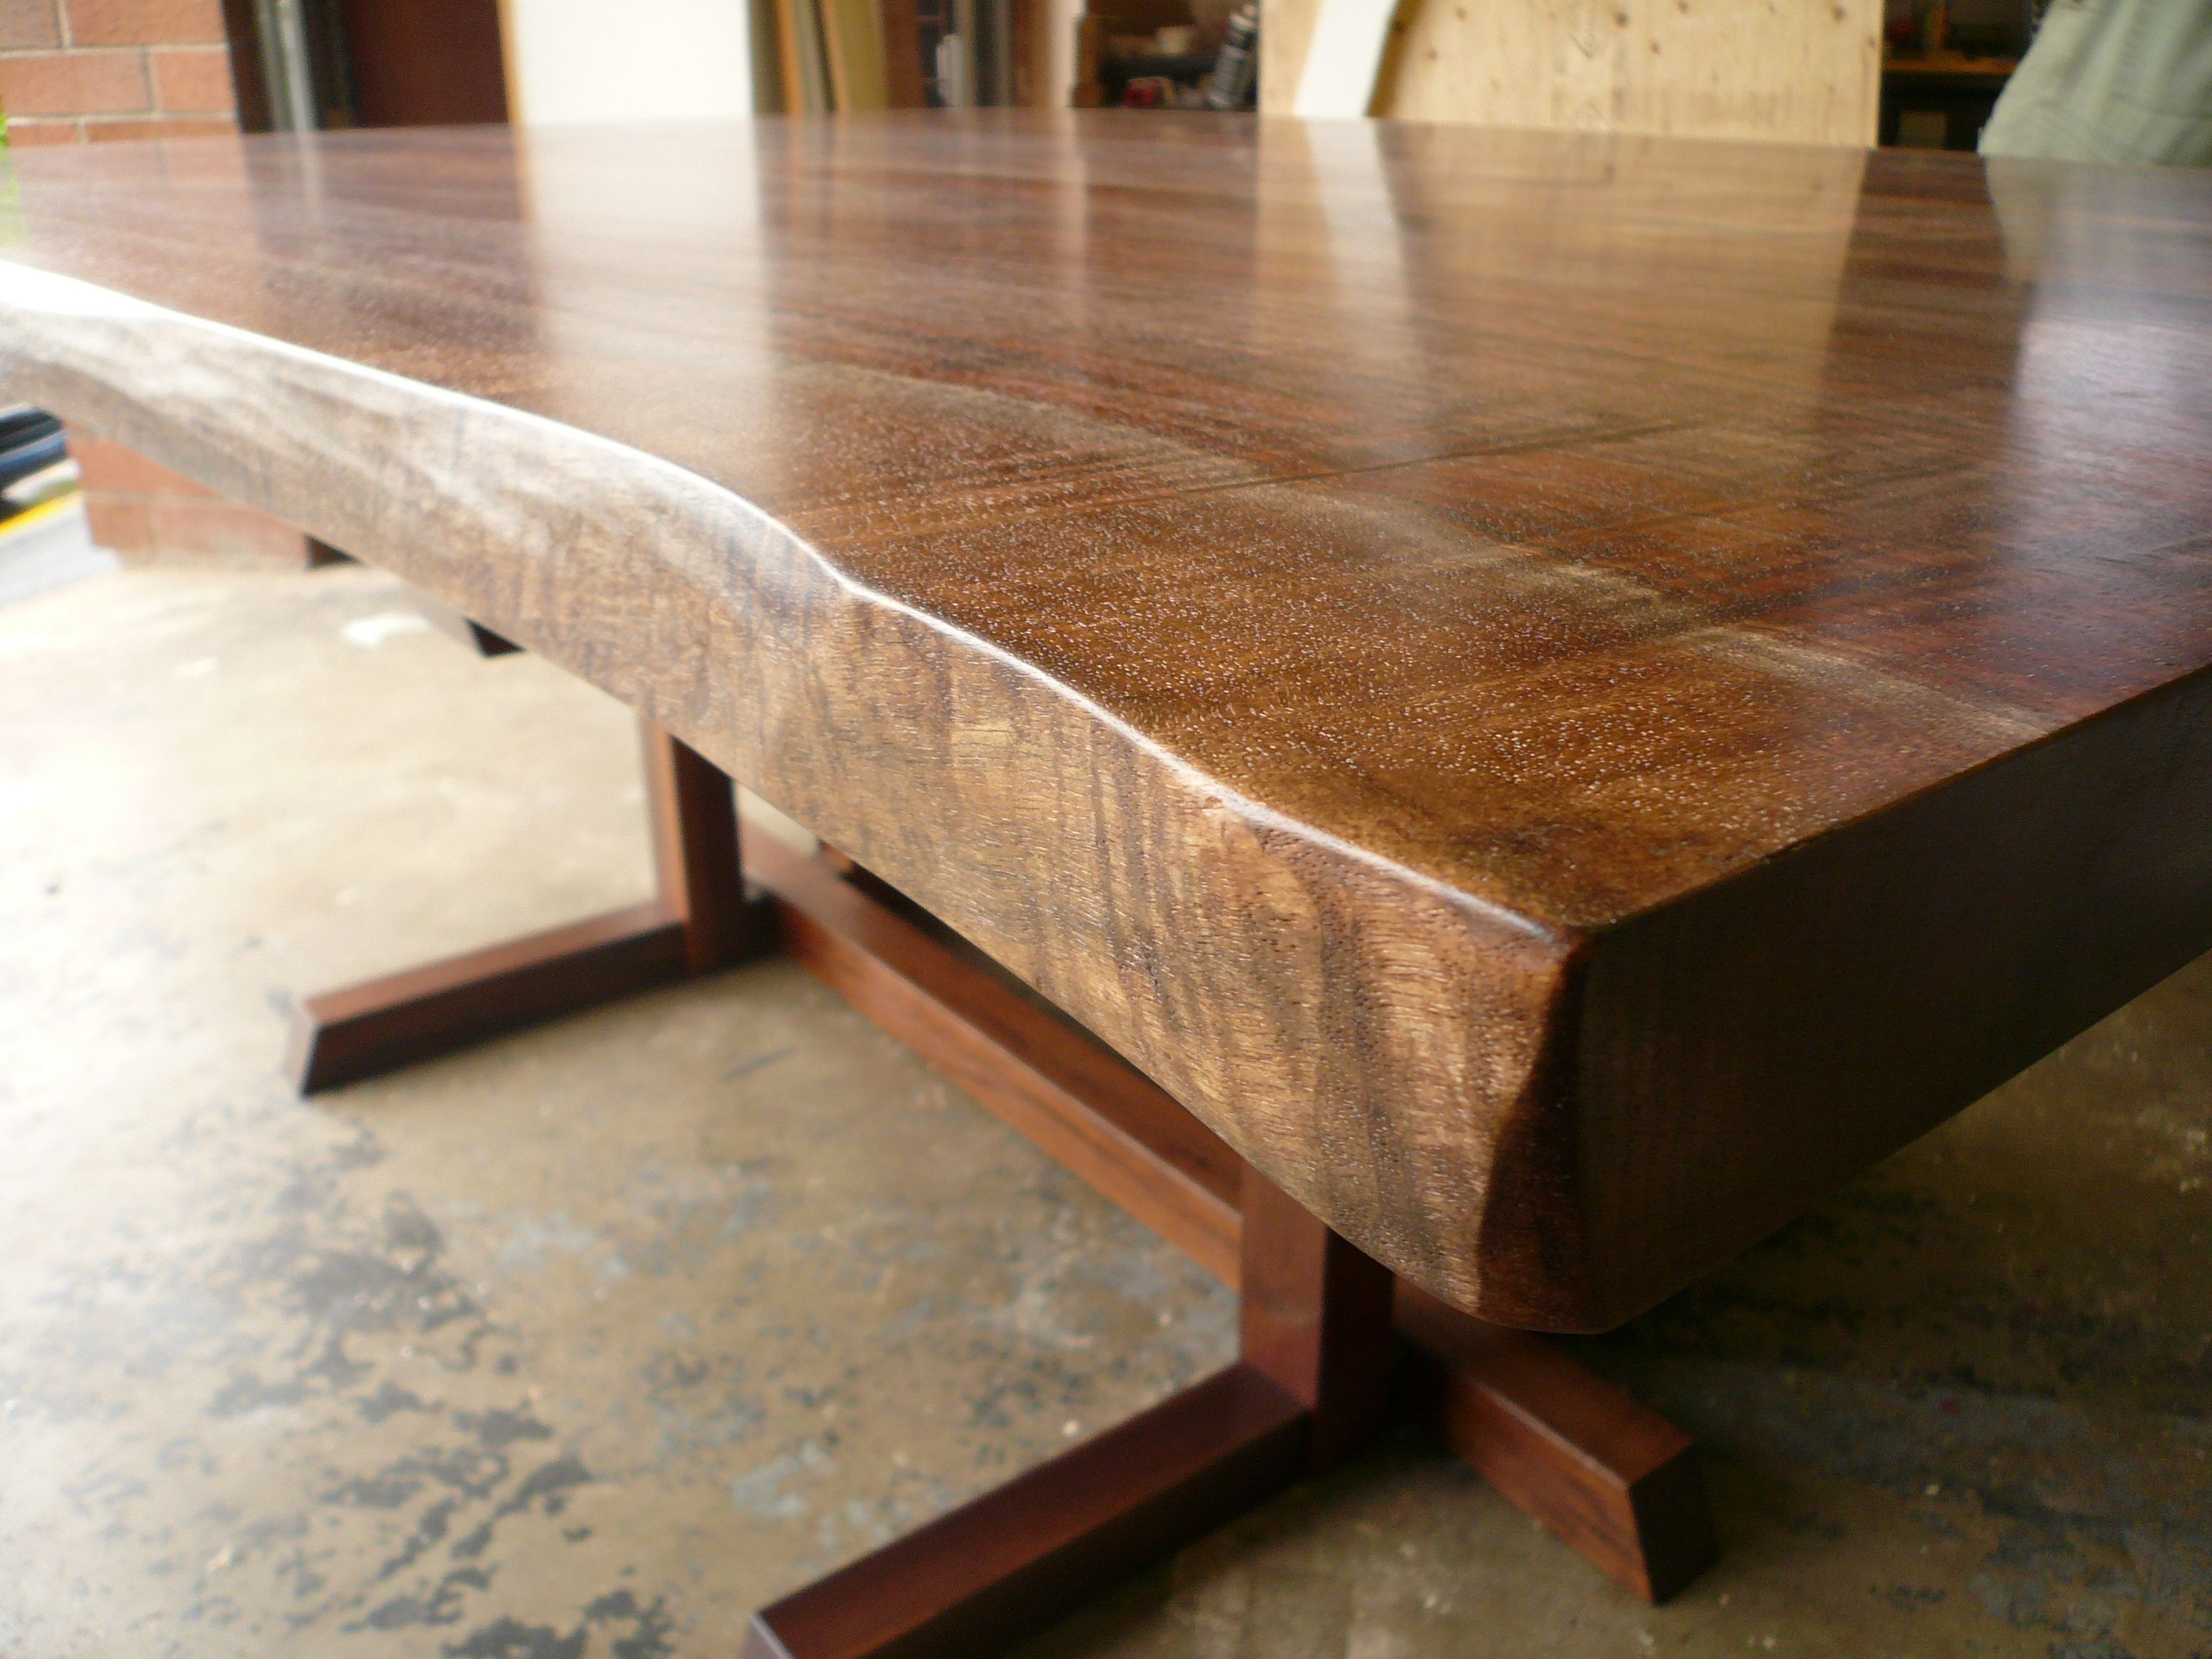 Walnut trestle dining table - Popular Brown Teak Japanese Dining Table With Neutral Polished On Concrete Floors As Inspiring Rustic Dining